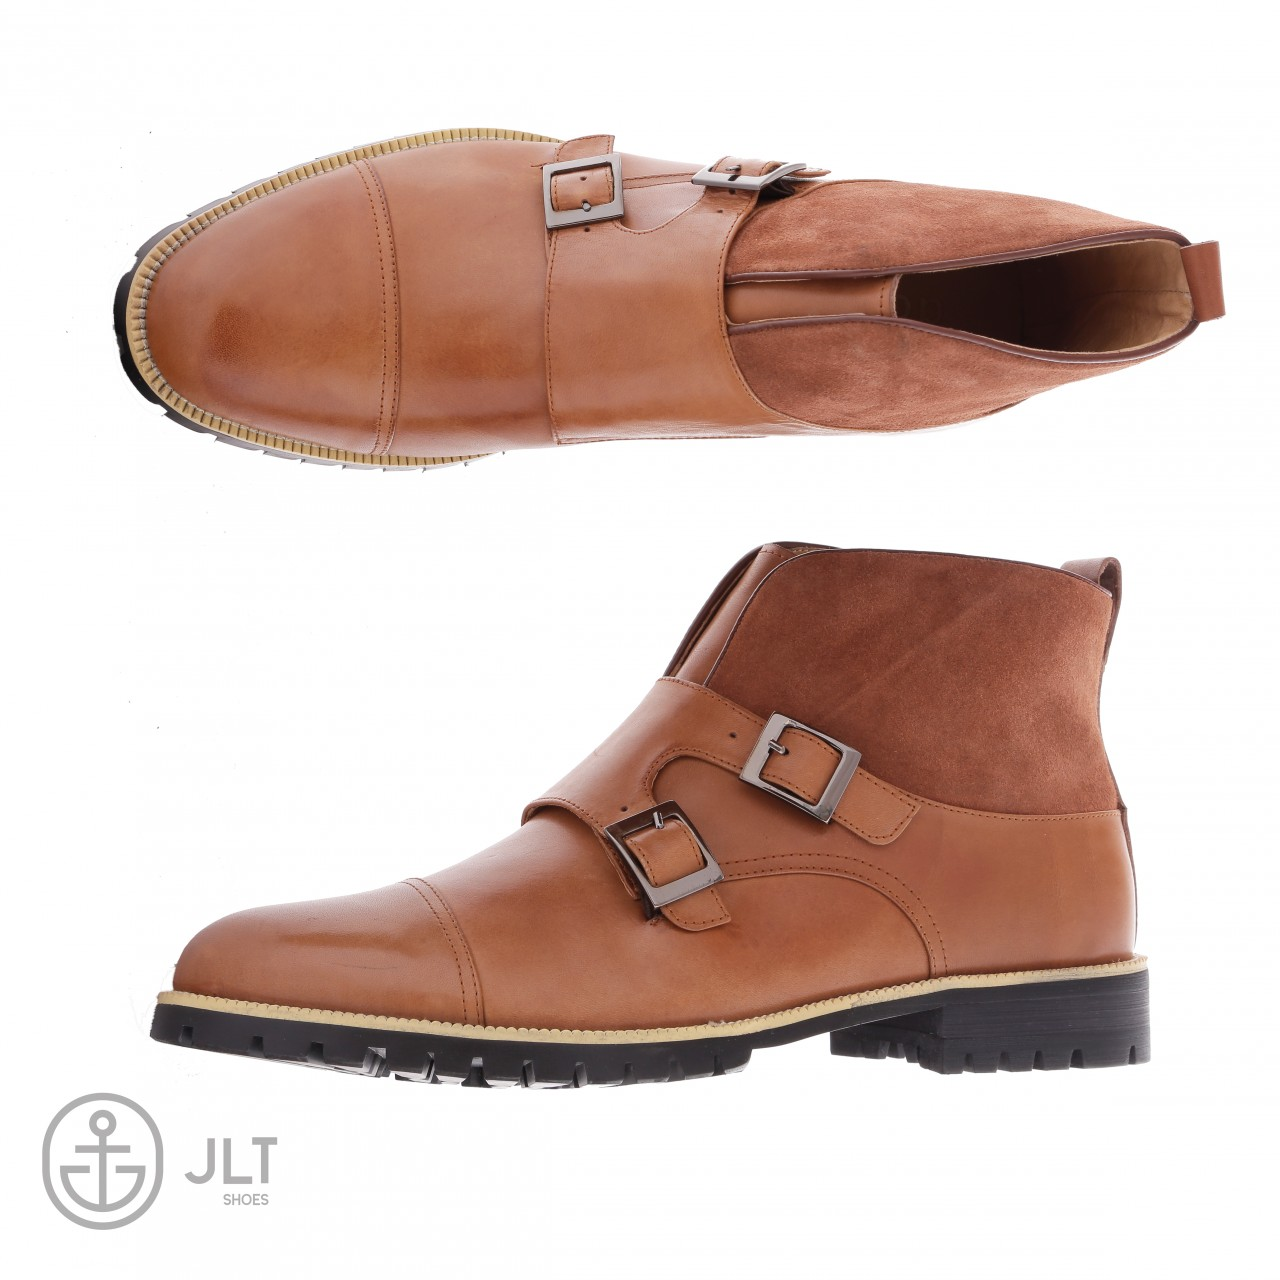 JLT Shoes - affordable and stylish 8